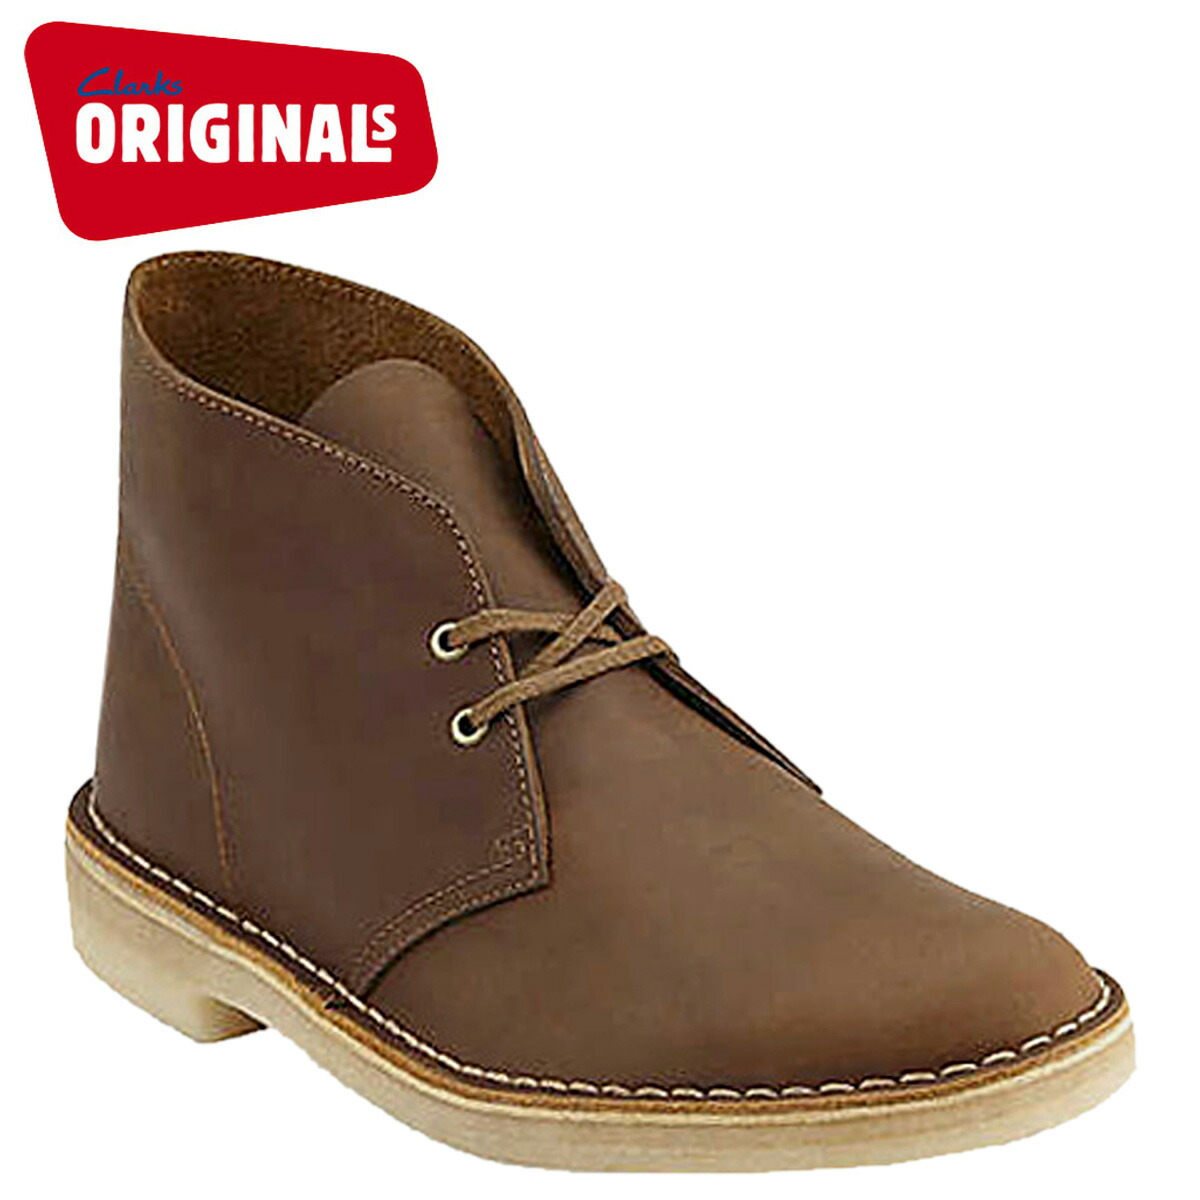 Clarks desert boots fashion 75